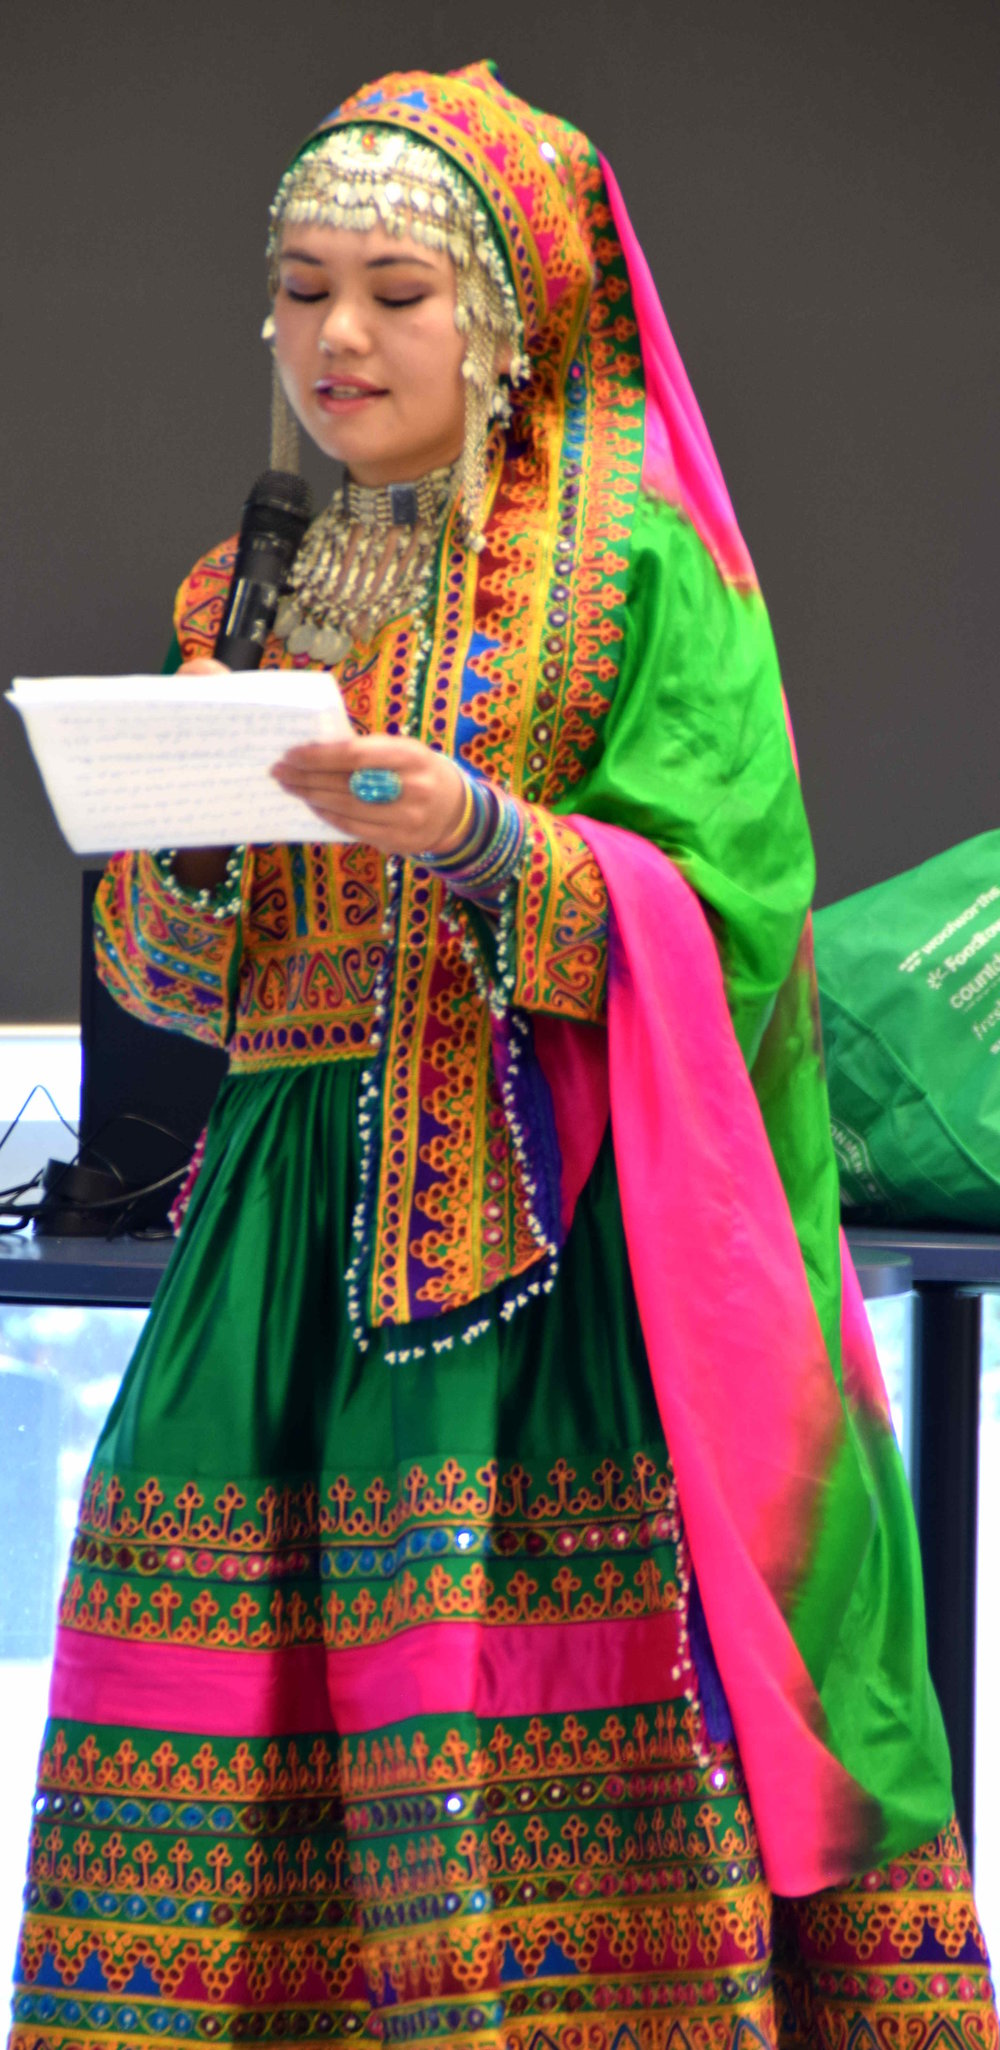 Maryam from Afghanistan addressing the gathering in Pashto, the South-Central Asian language of the Pashtuns